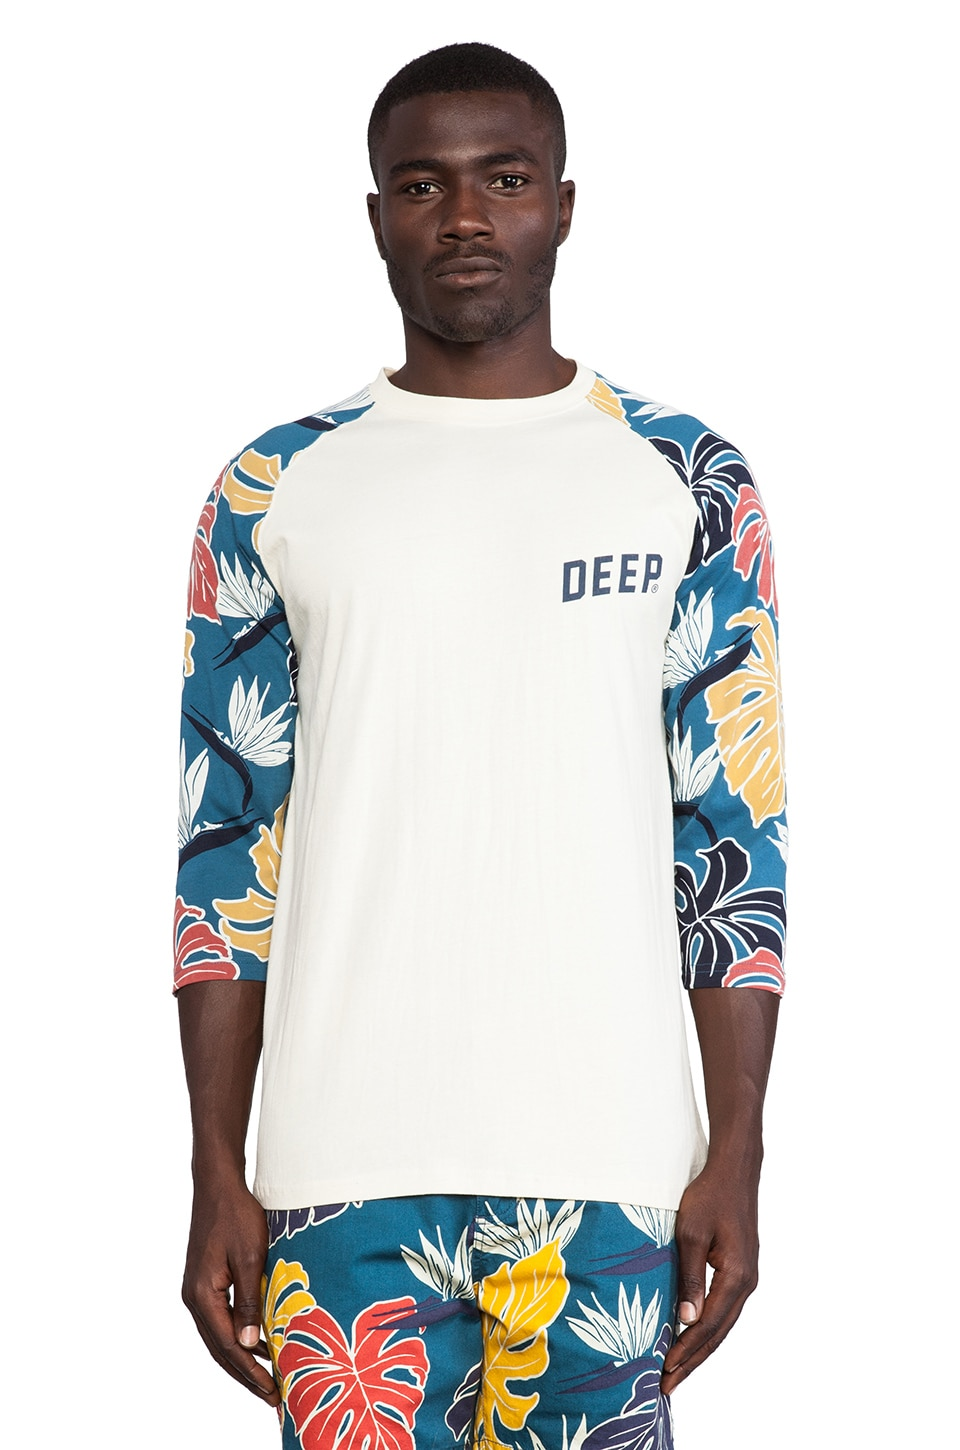 10 Deep Birds of Paradise 3/4 Sleeve Tee in Natural